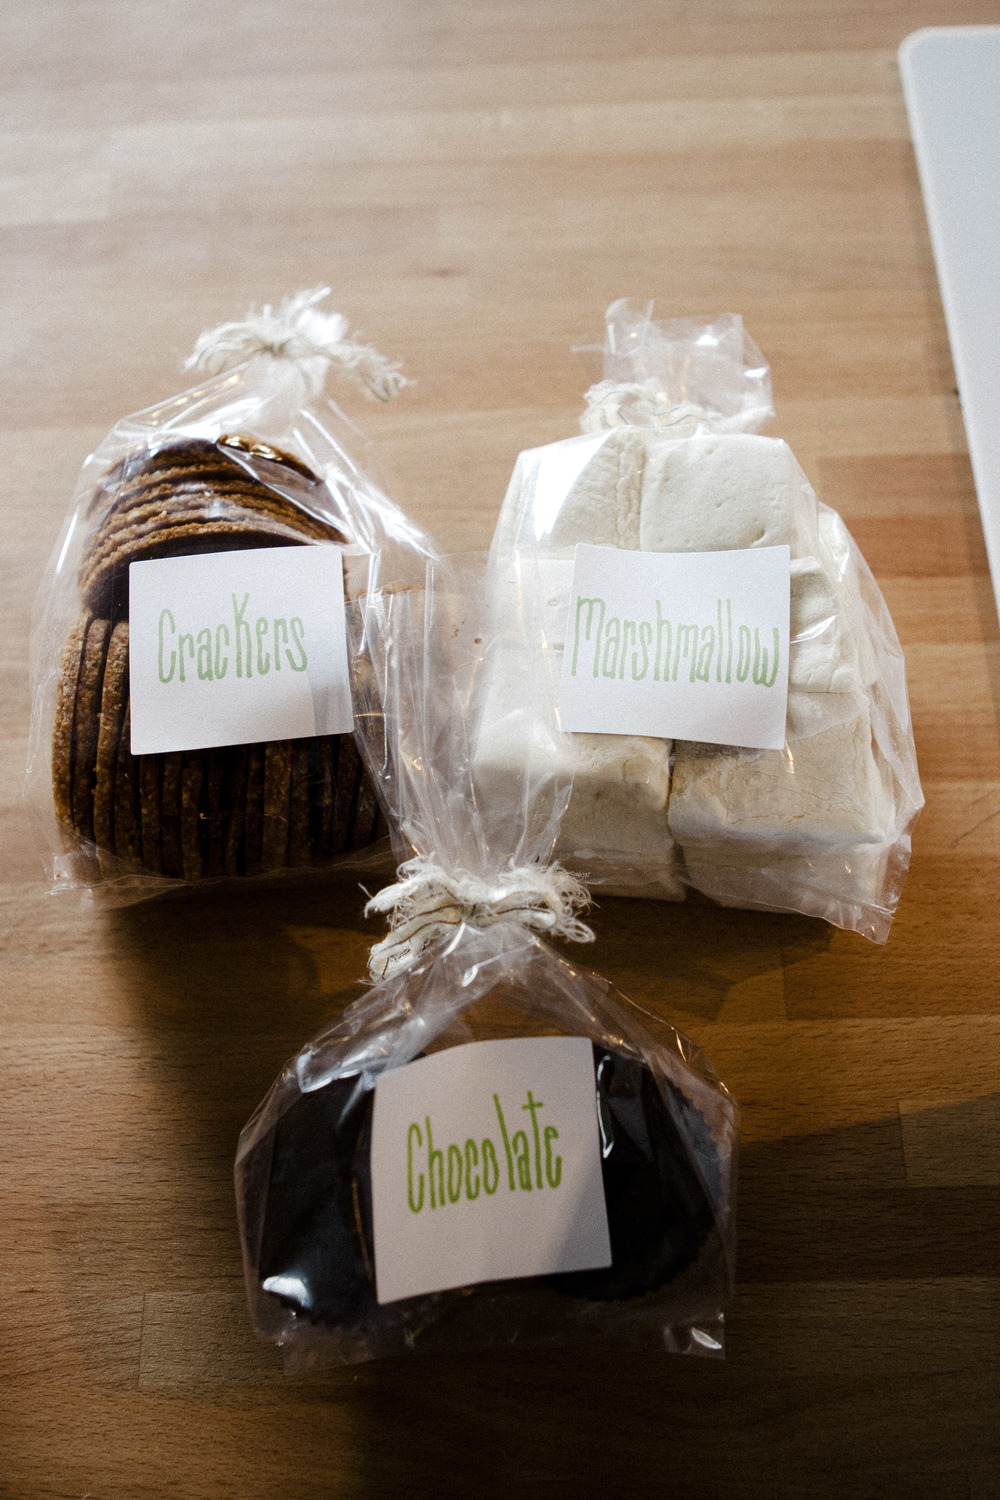 Gluten free, dairy free, soy free, soy free S'mores Kits by Feed Me Rachel Photo by Erin Grace Photography